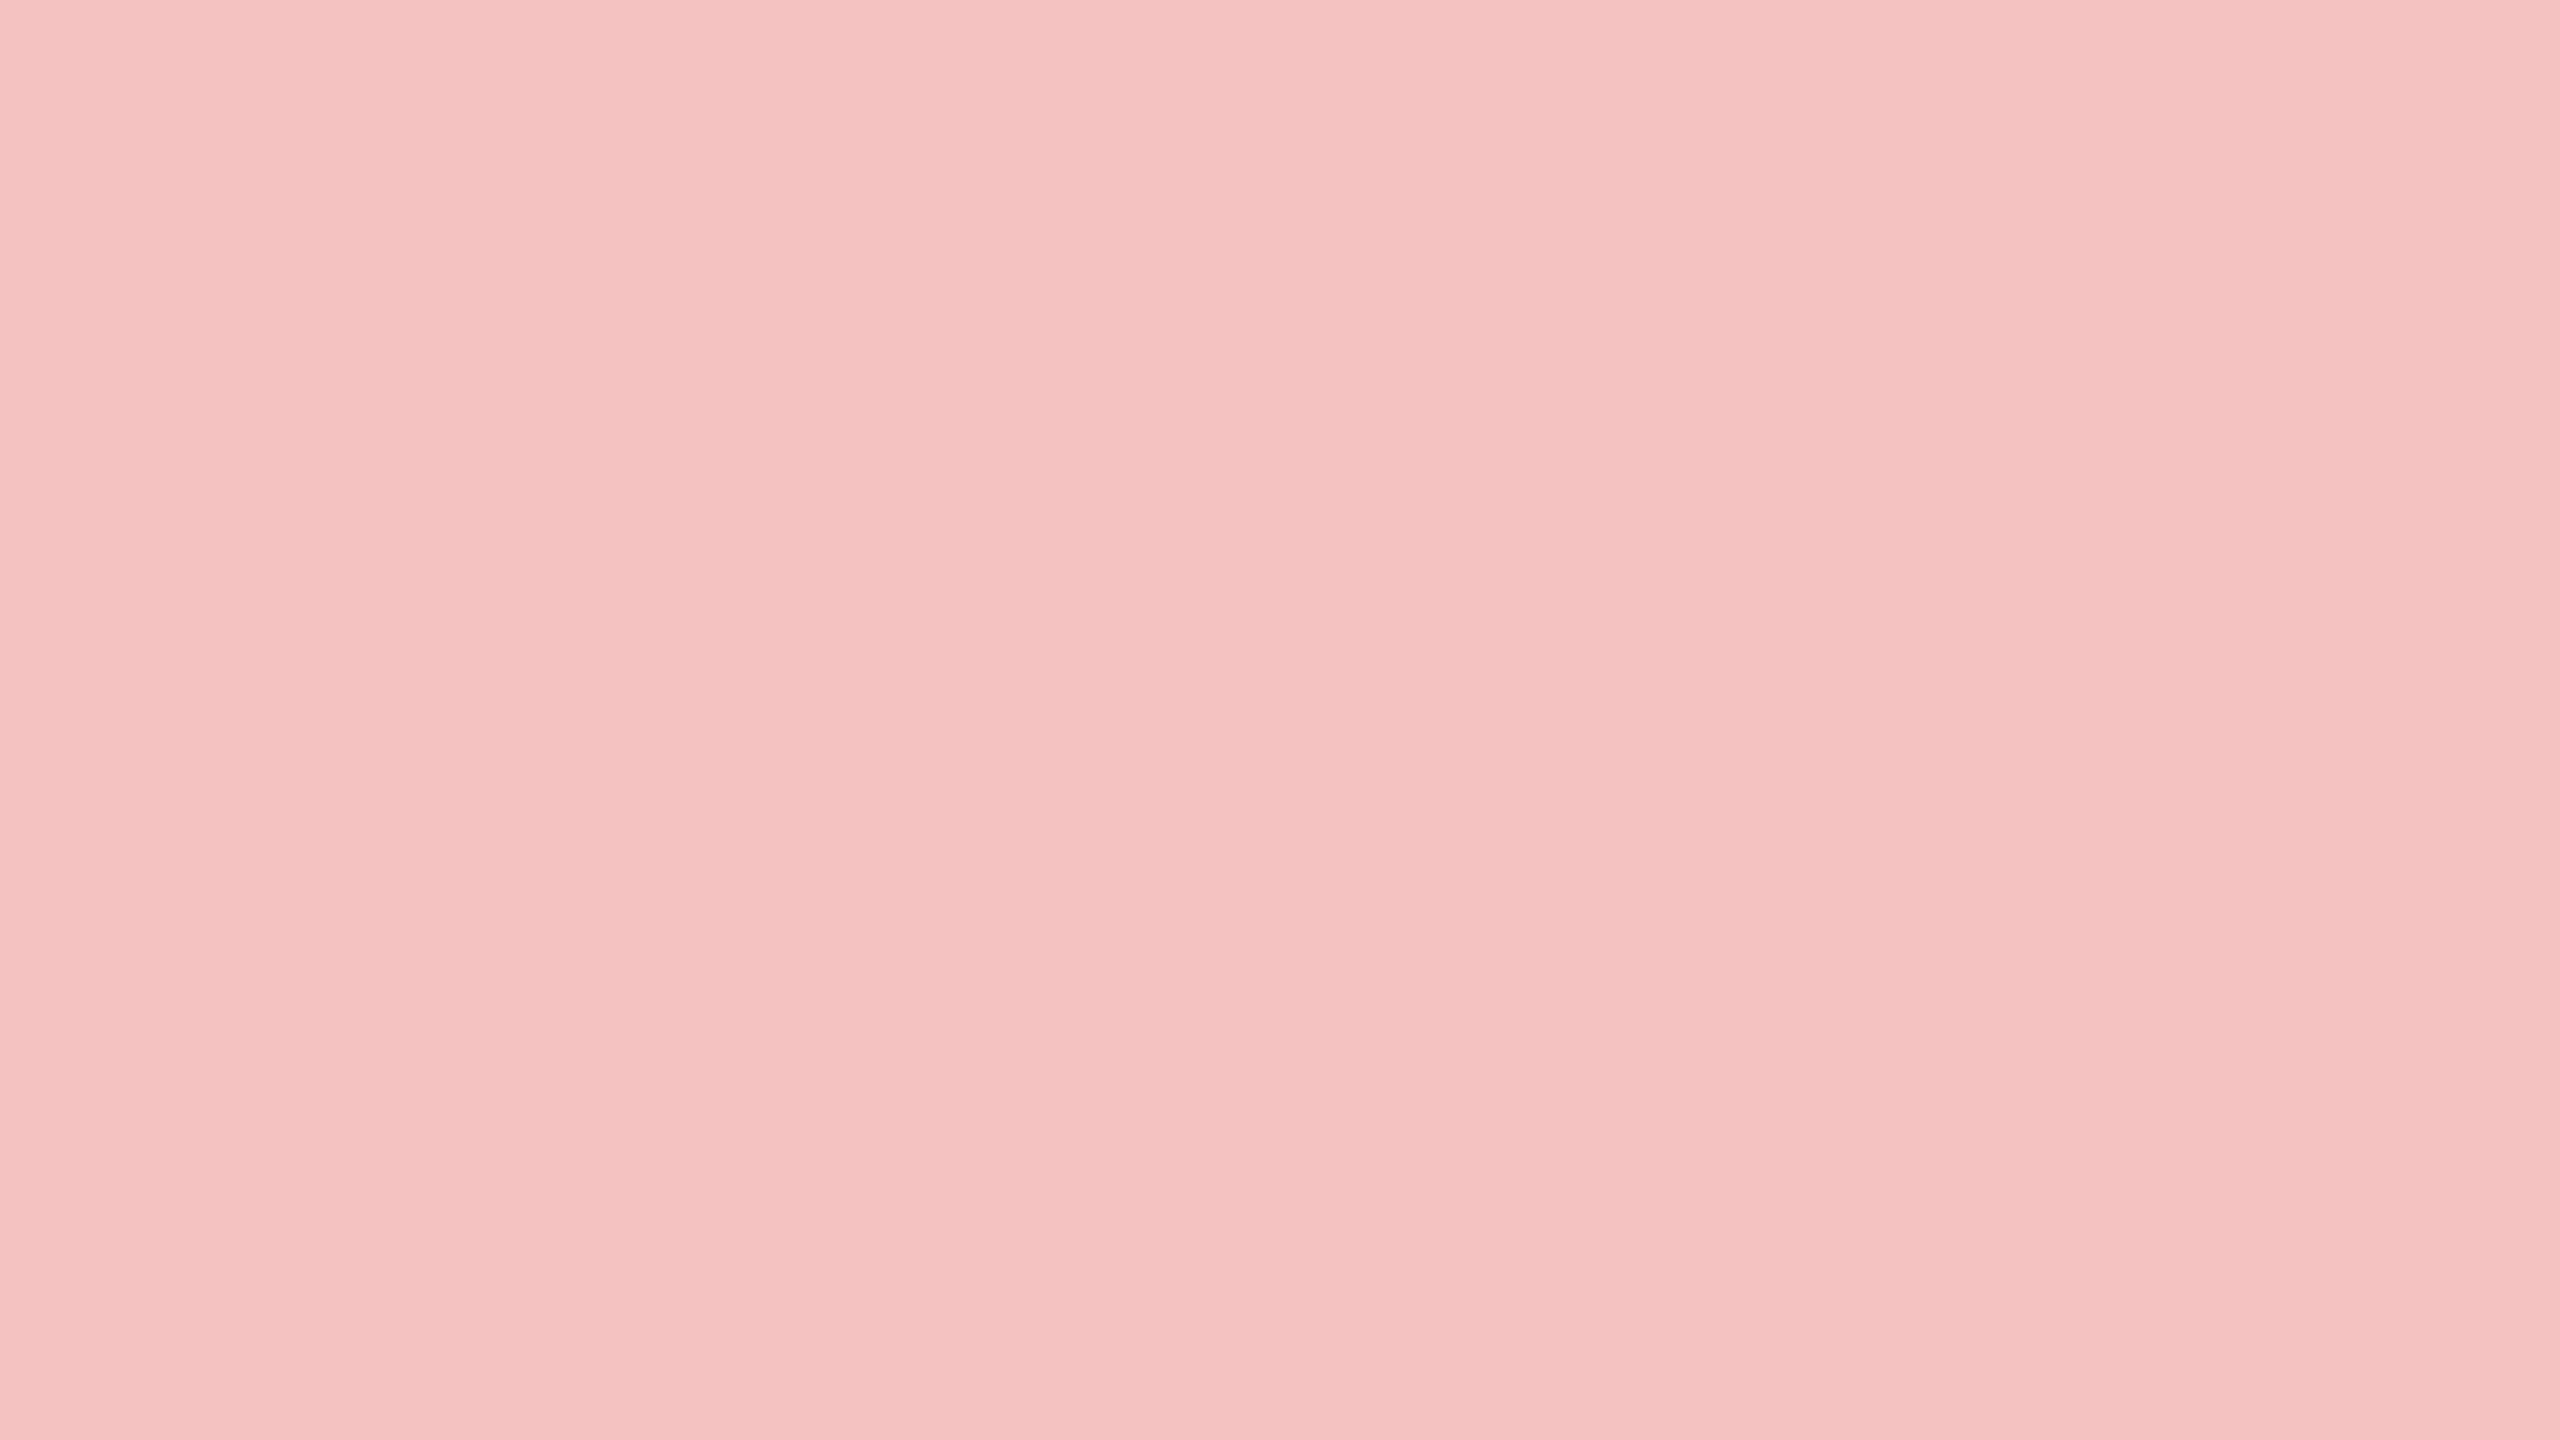 2560x1440 Baby Pink Solid Color Background